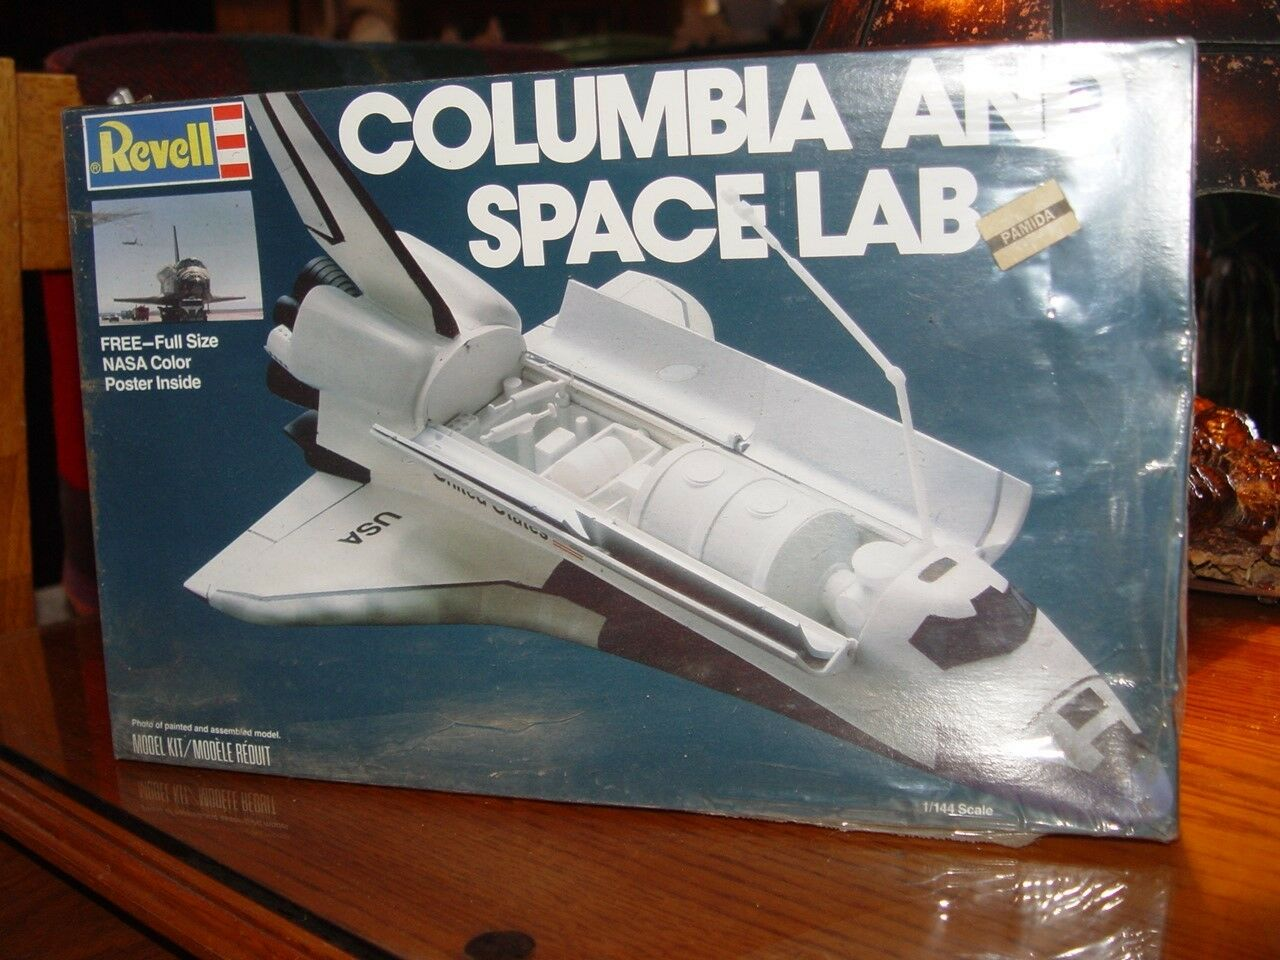 1 144 Scale Columbia & Space lab Revell Model Kit No. 4717 Free poster too  1981